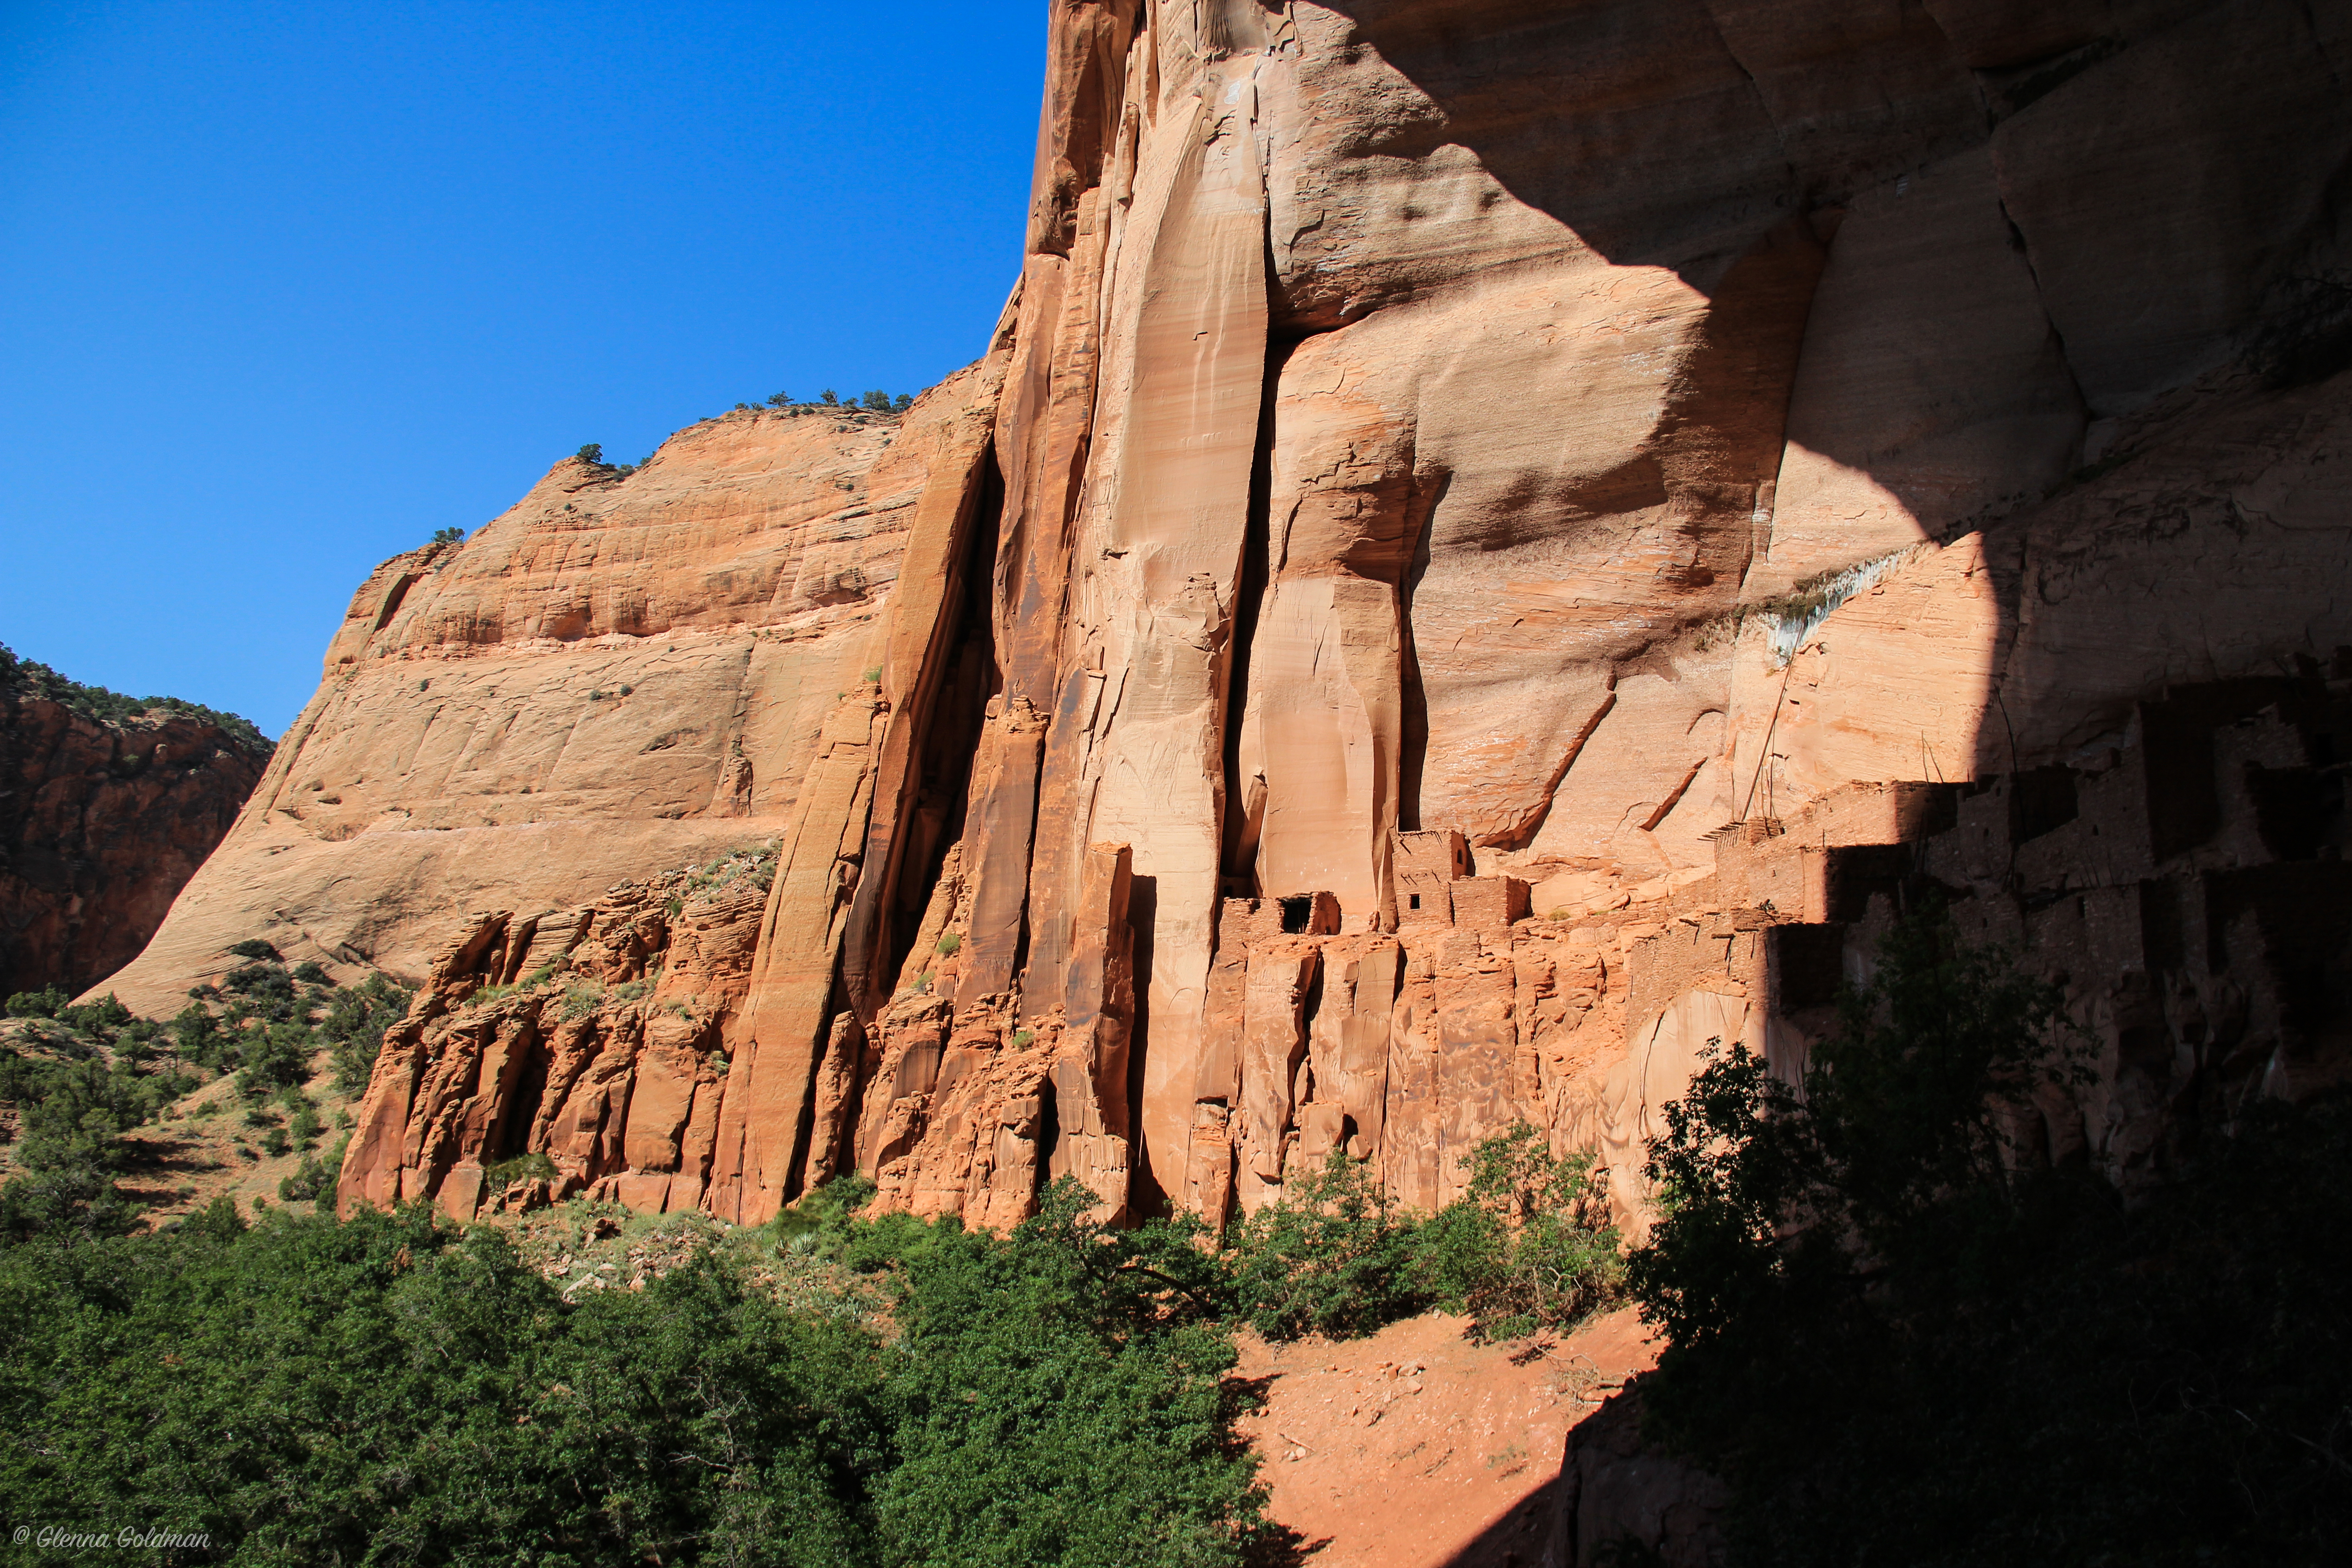 Ancestral Puebloan Cliff Dwellings – Betatakin and Wupatki in Northern Arizona